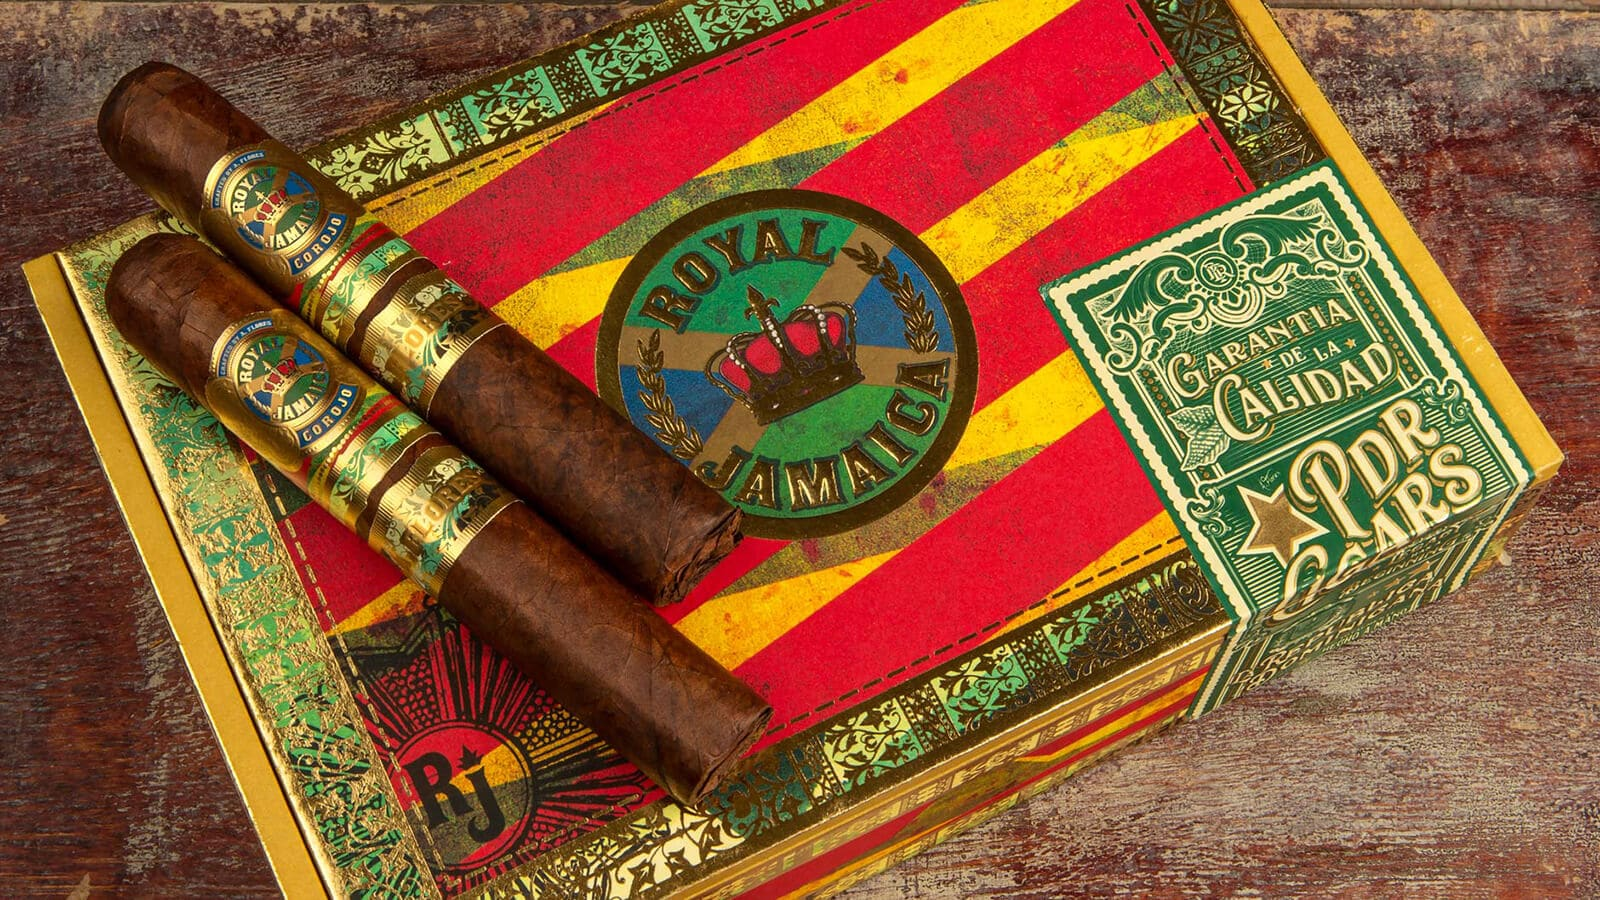 Royal Jamaica Cigars